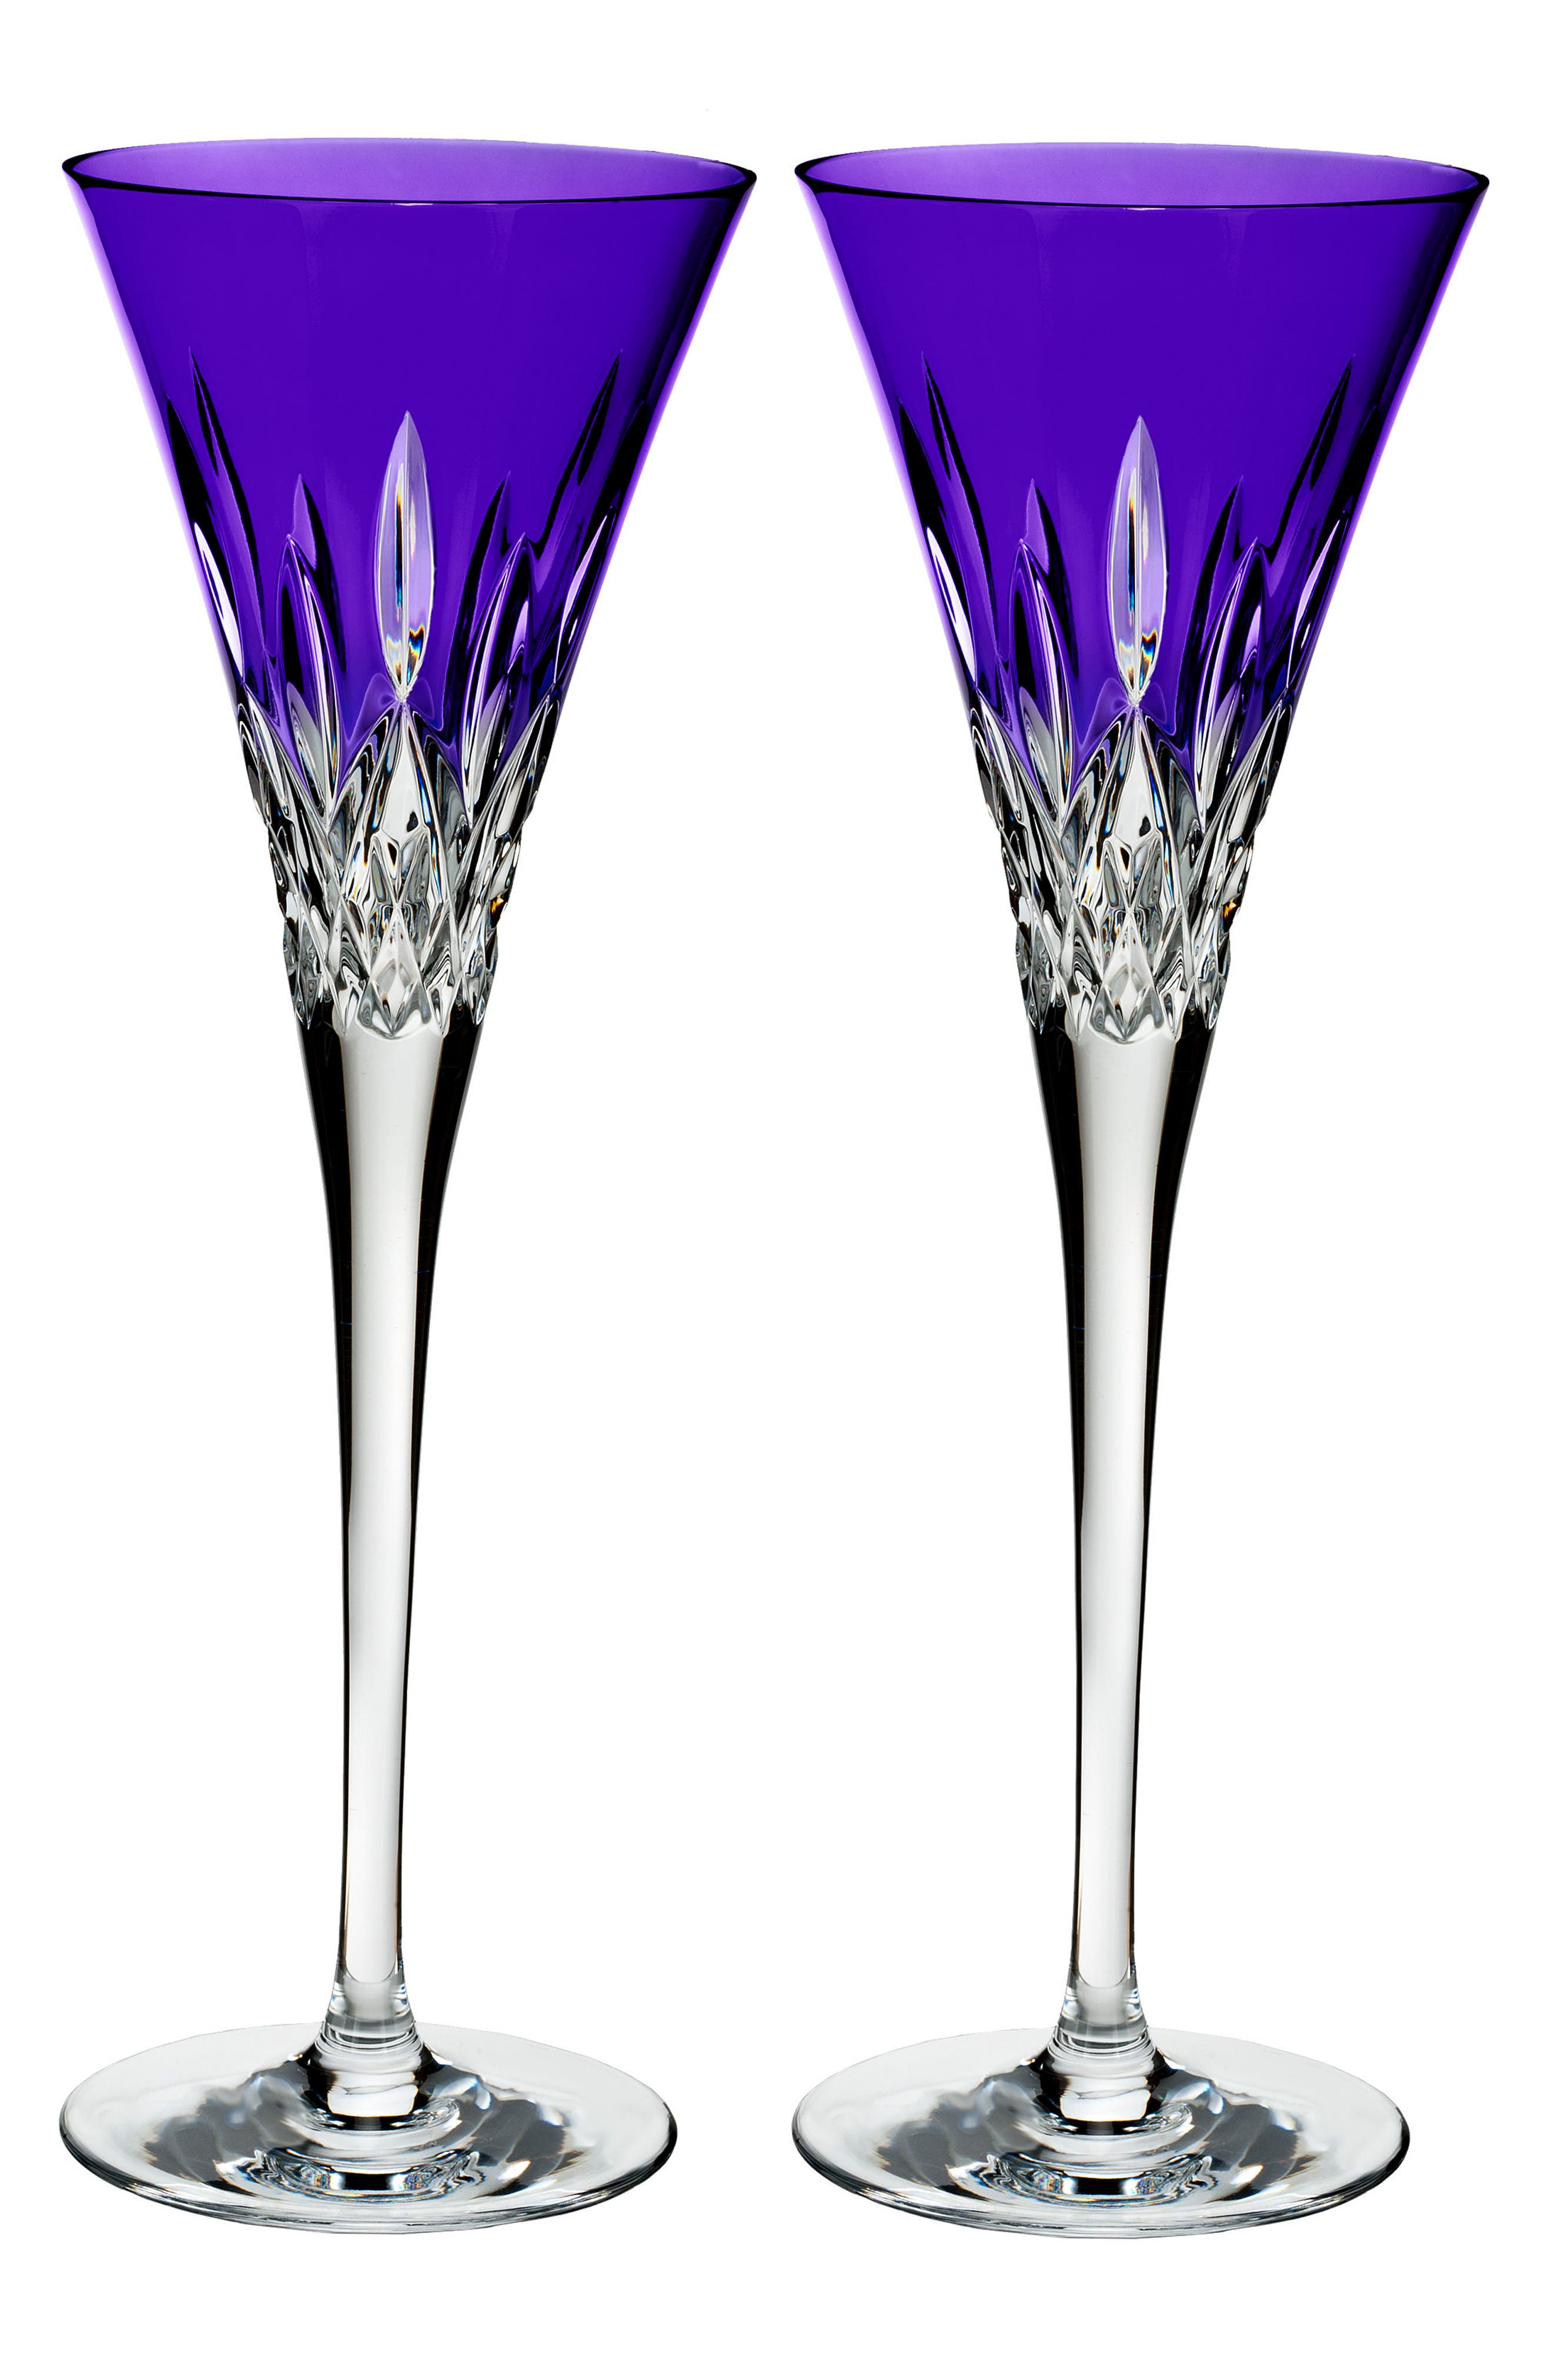 Alternate Image 1 Selected - Waterford Lismore Pops Set of 2 Purple Lead Crystal Champagne Flutes